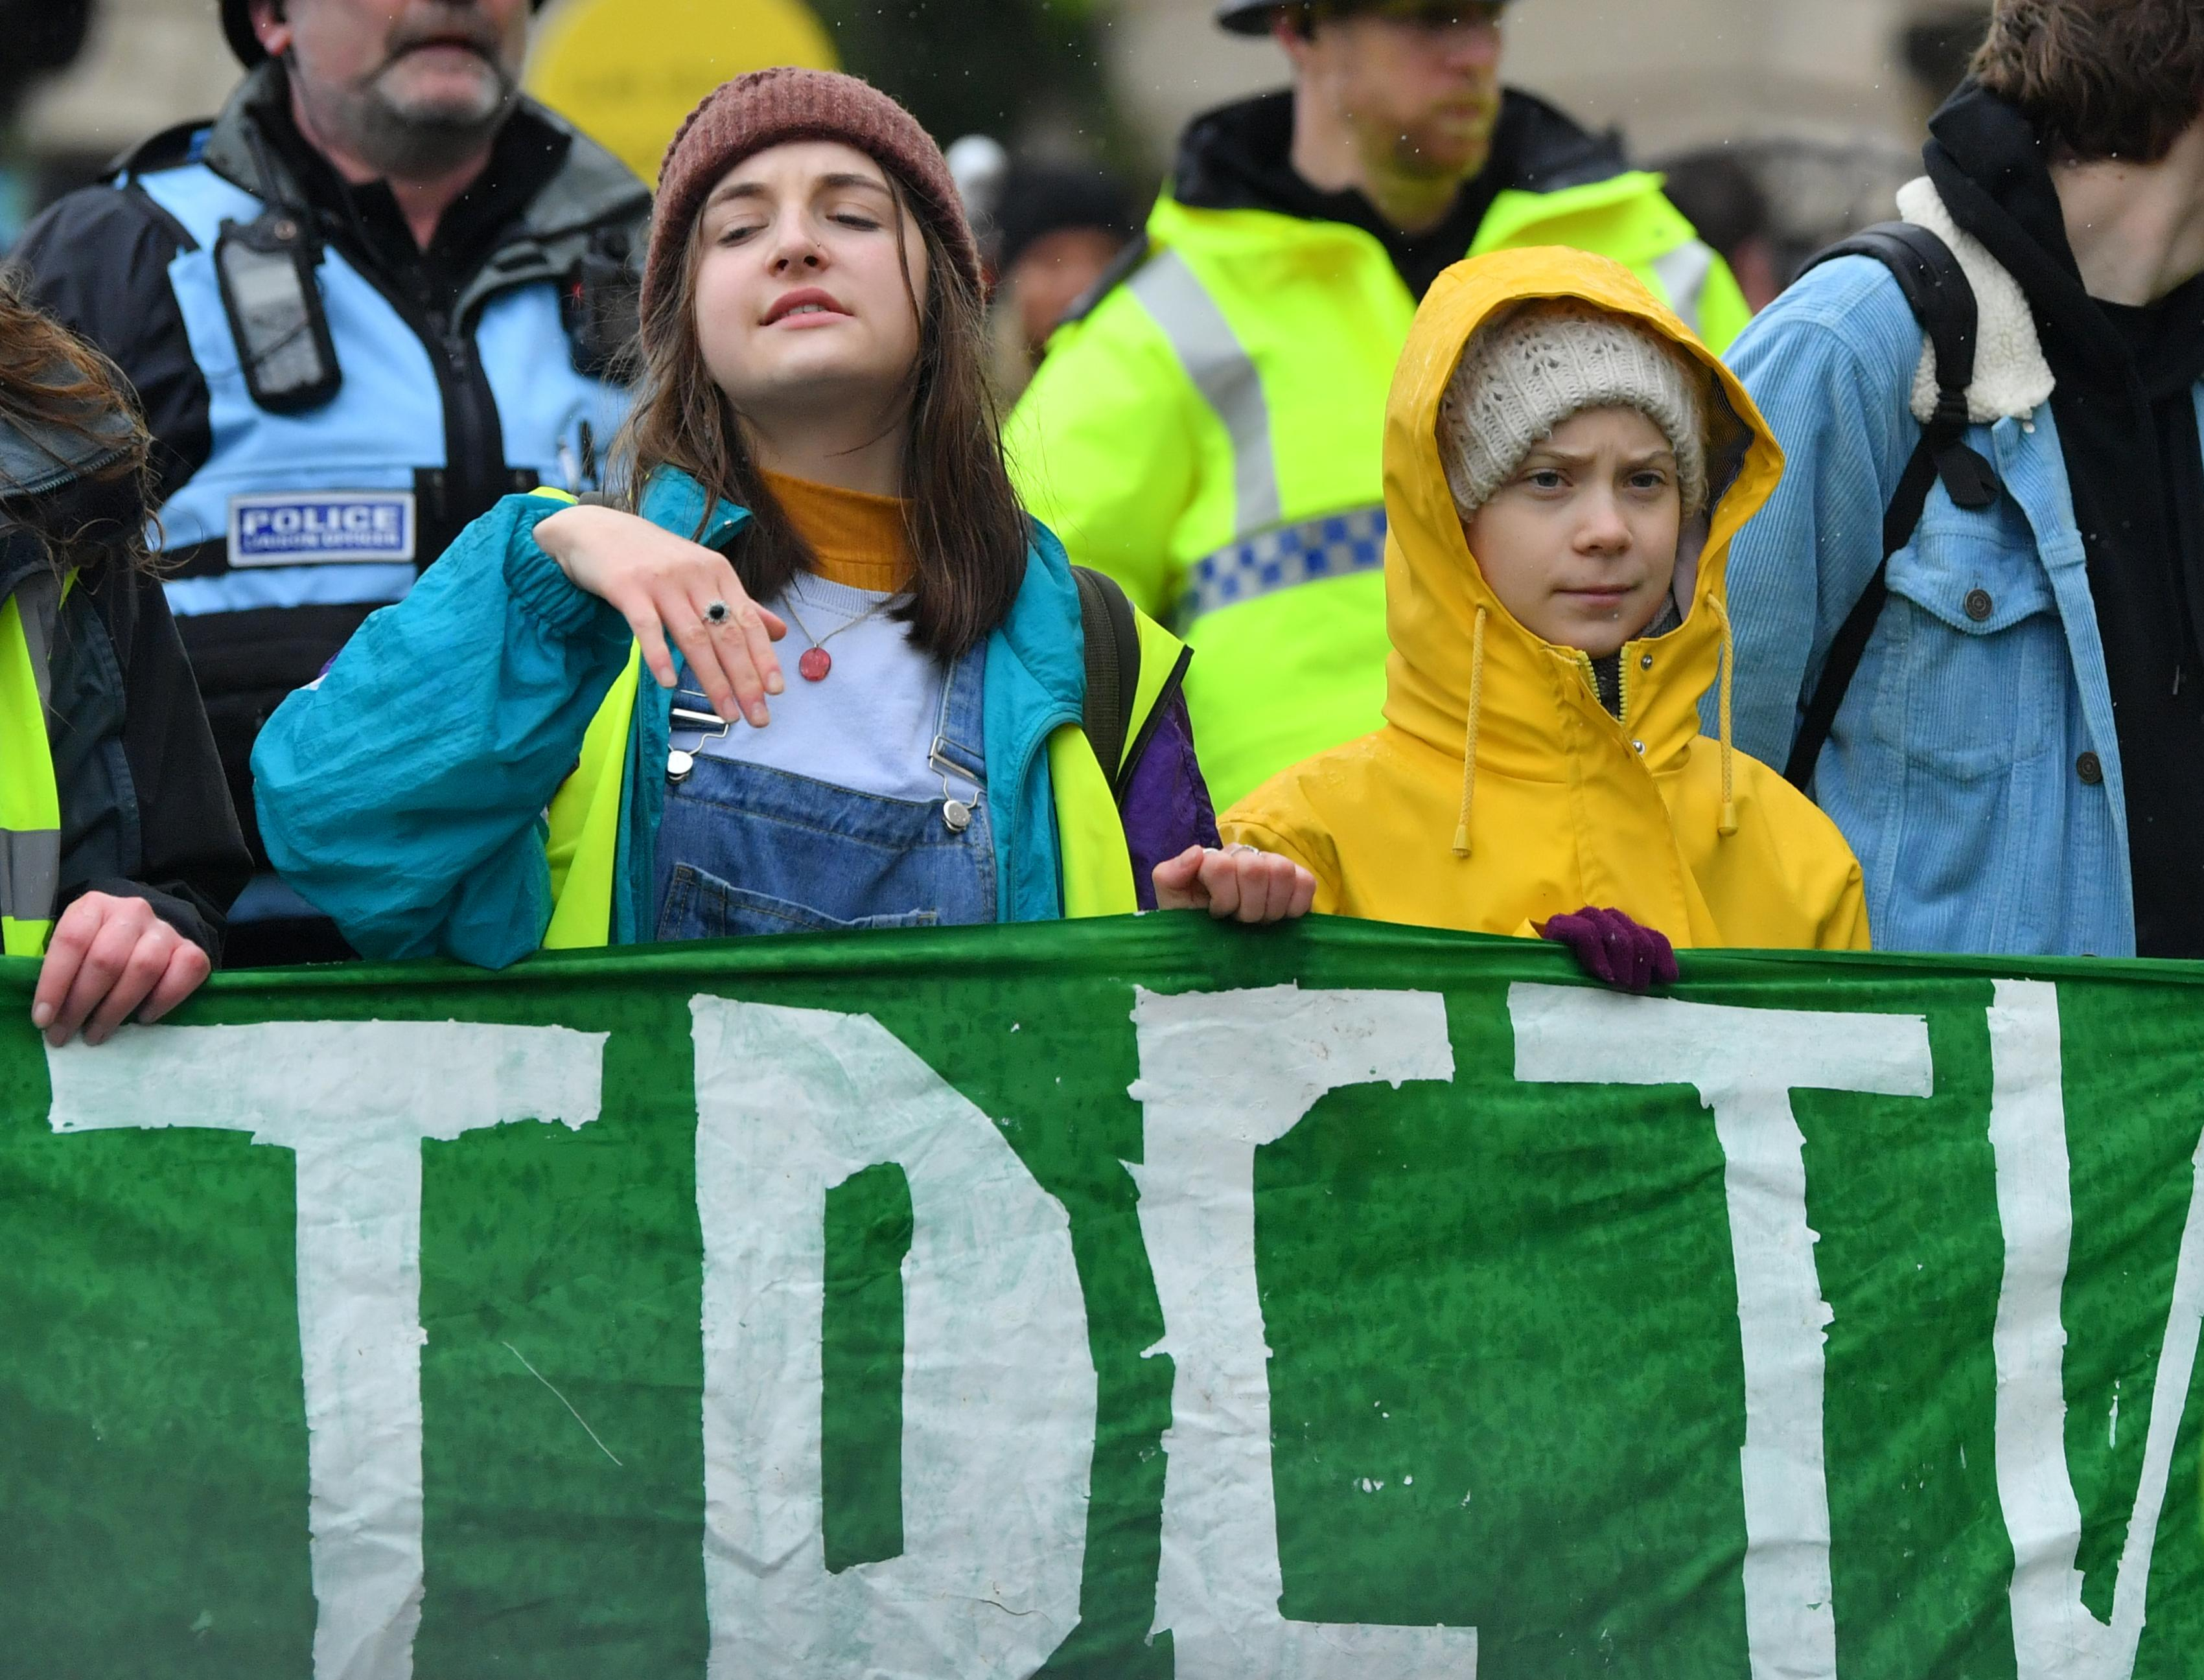 Environmental activist Greta Thunberg (right) marches during a Youth Strike 4 Climate protest in Bristol.